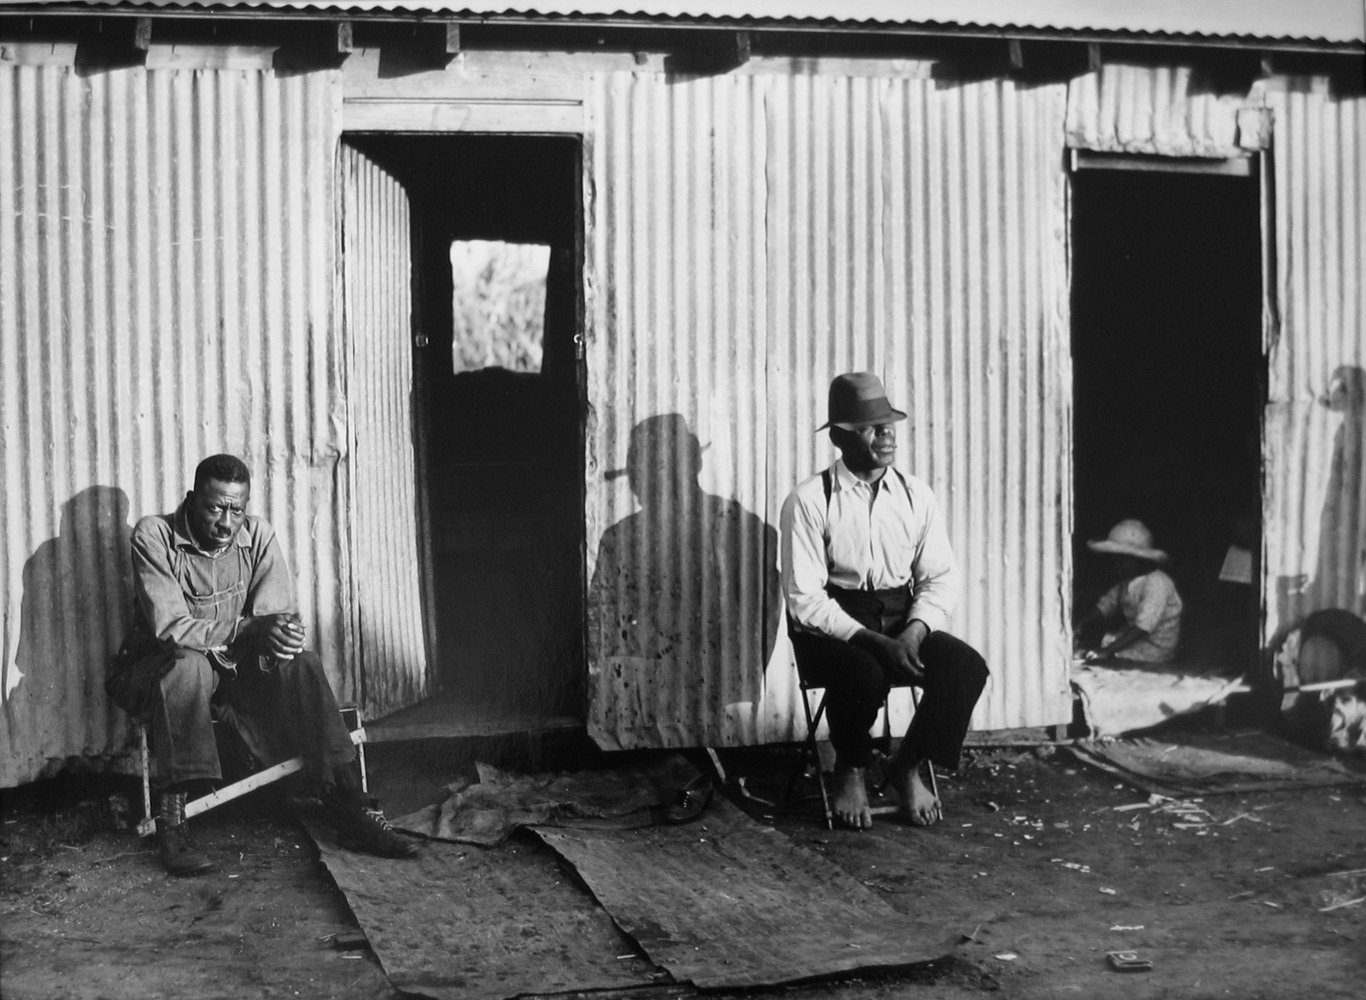 Marion Post Wolcott, Quarters for migrants in Lake O'Keechobee area, Florida, ca. 1939, gelatin silver print, signed, 11 x 14 inches